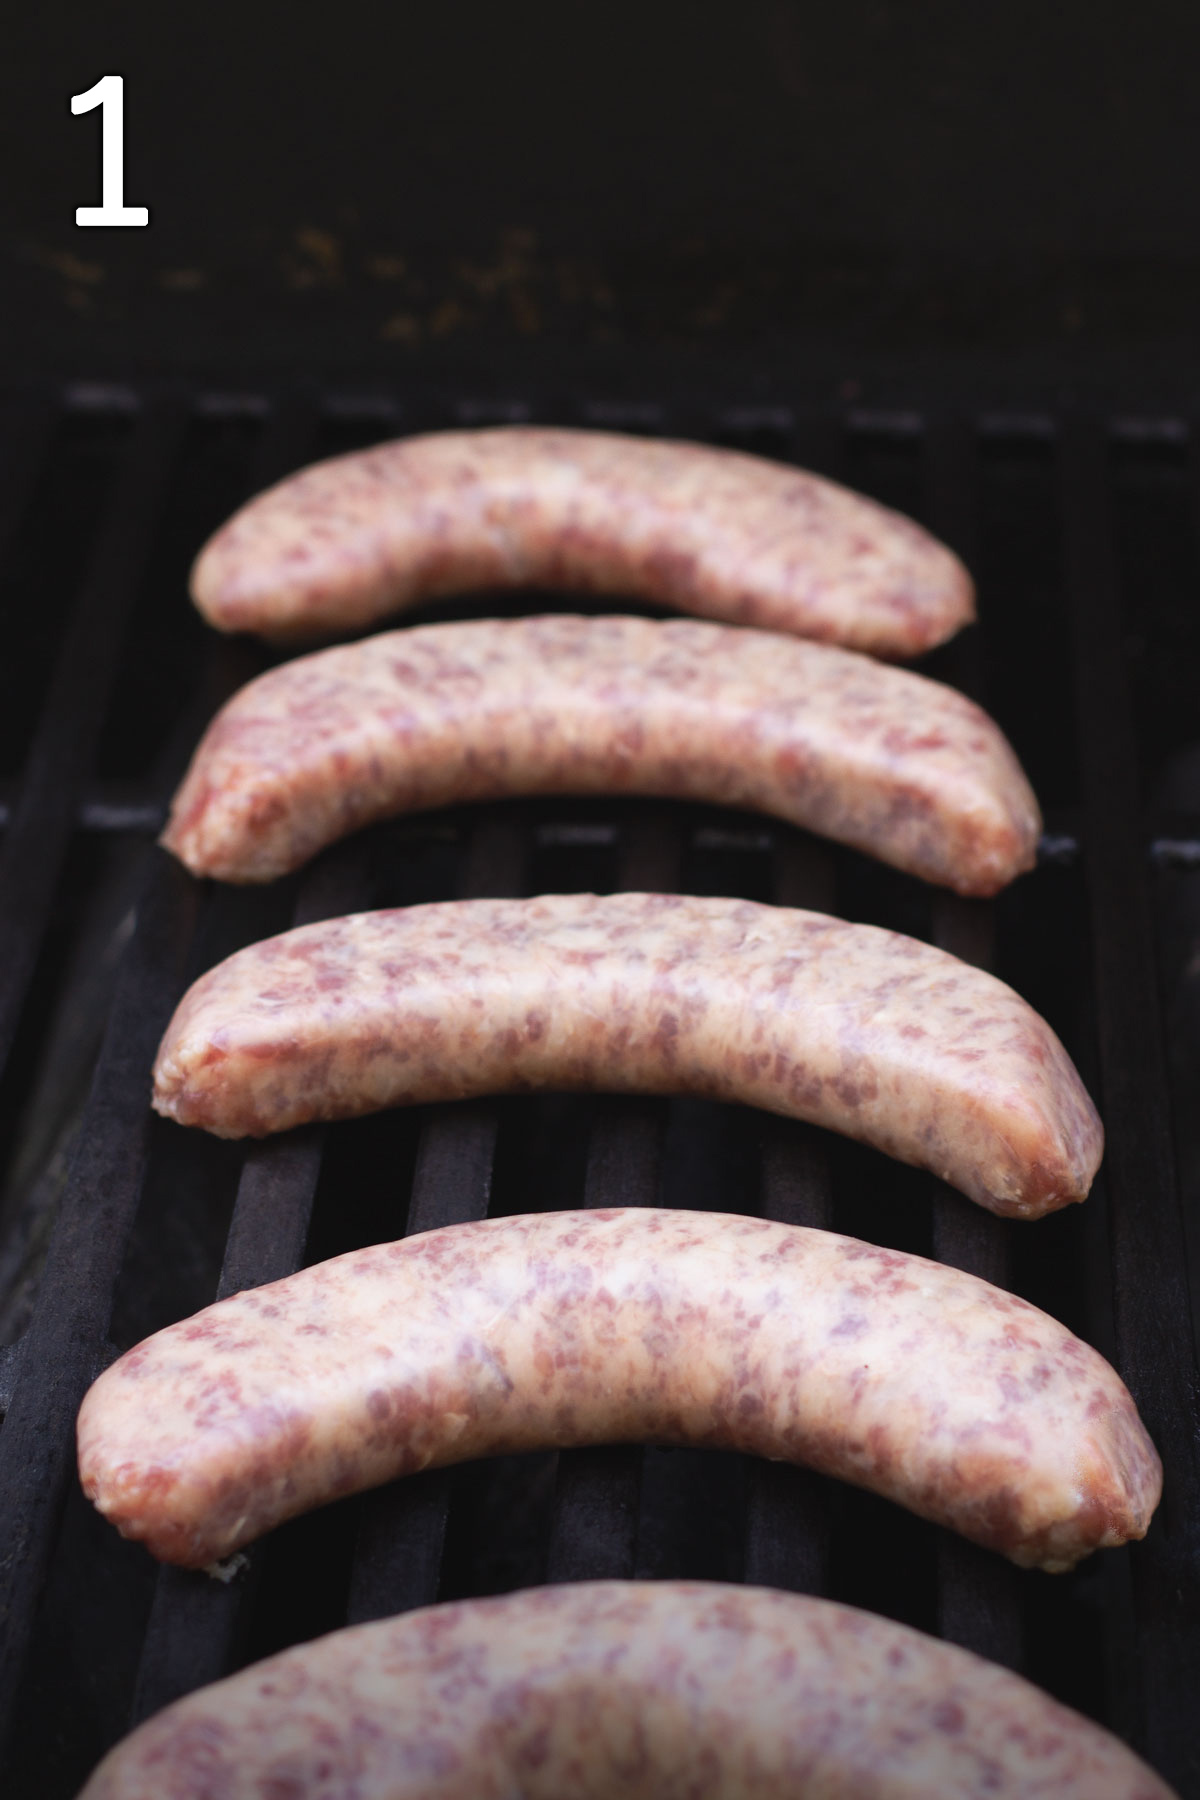 uncooked brats laid out on the hot grill.